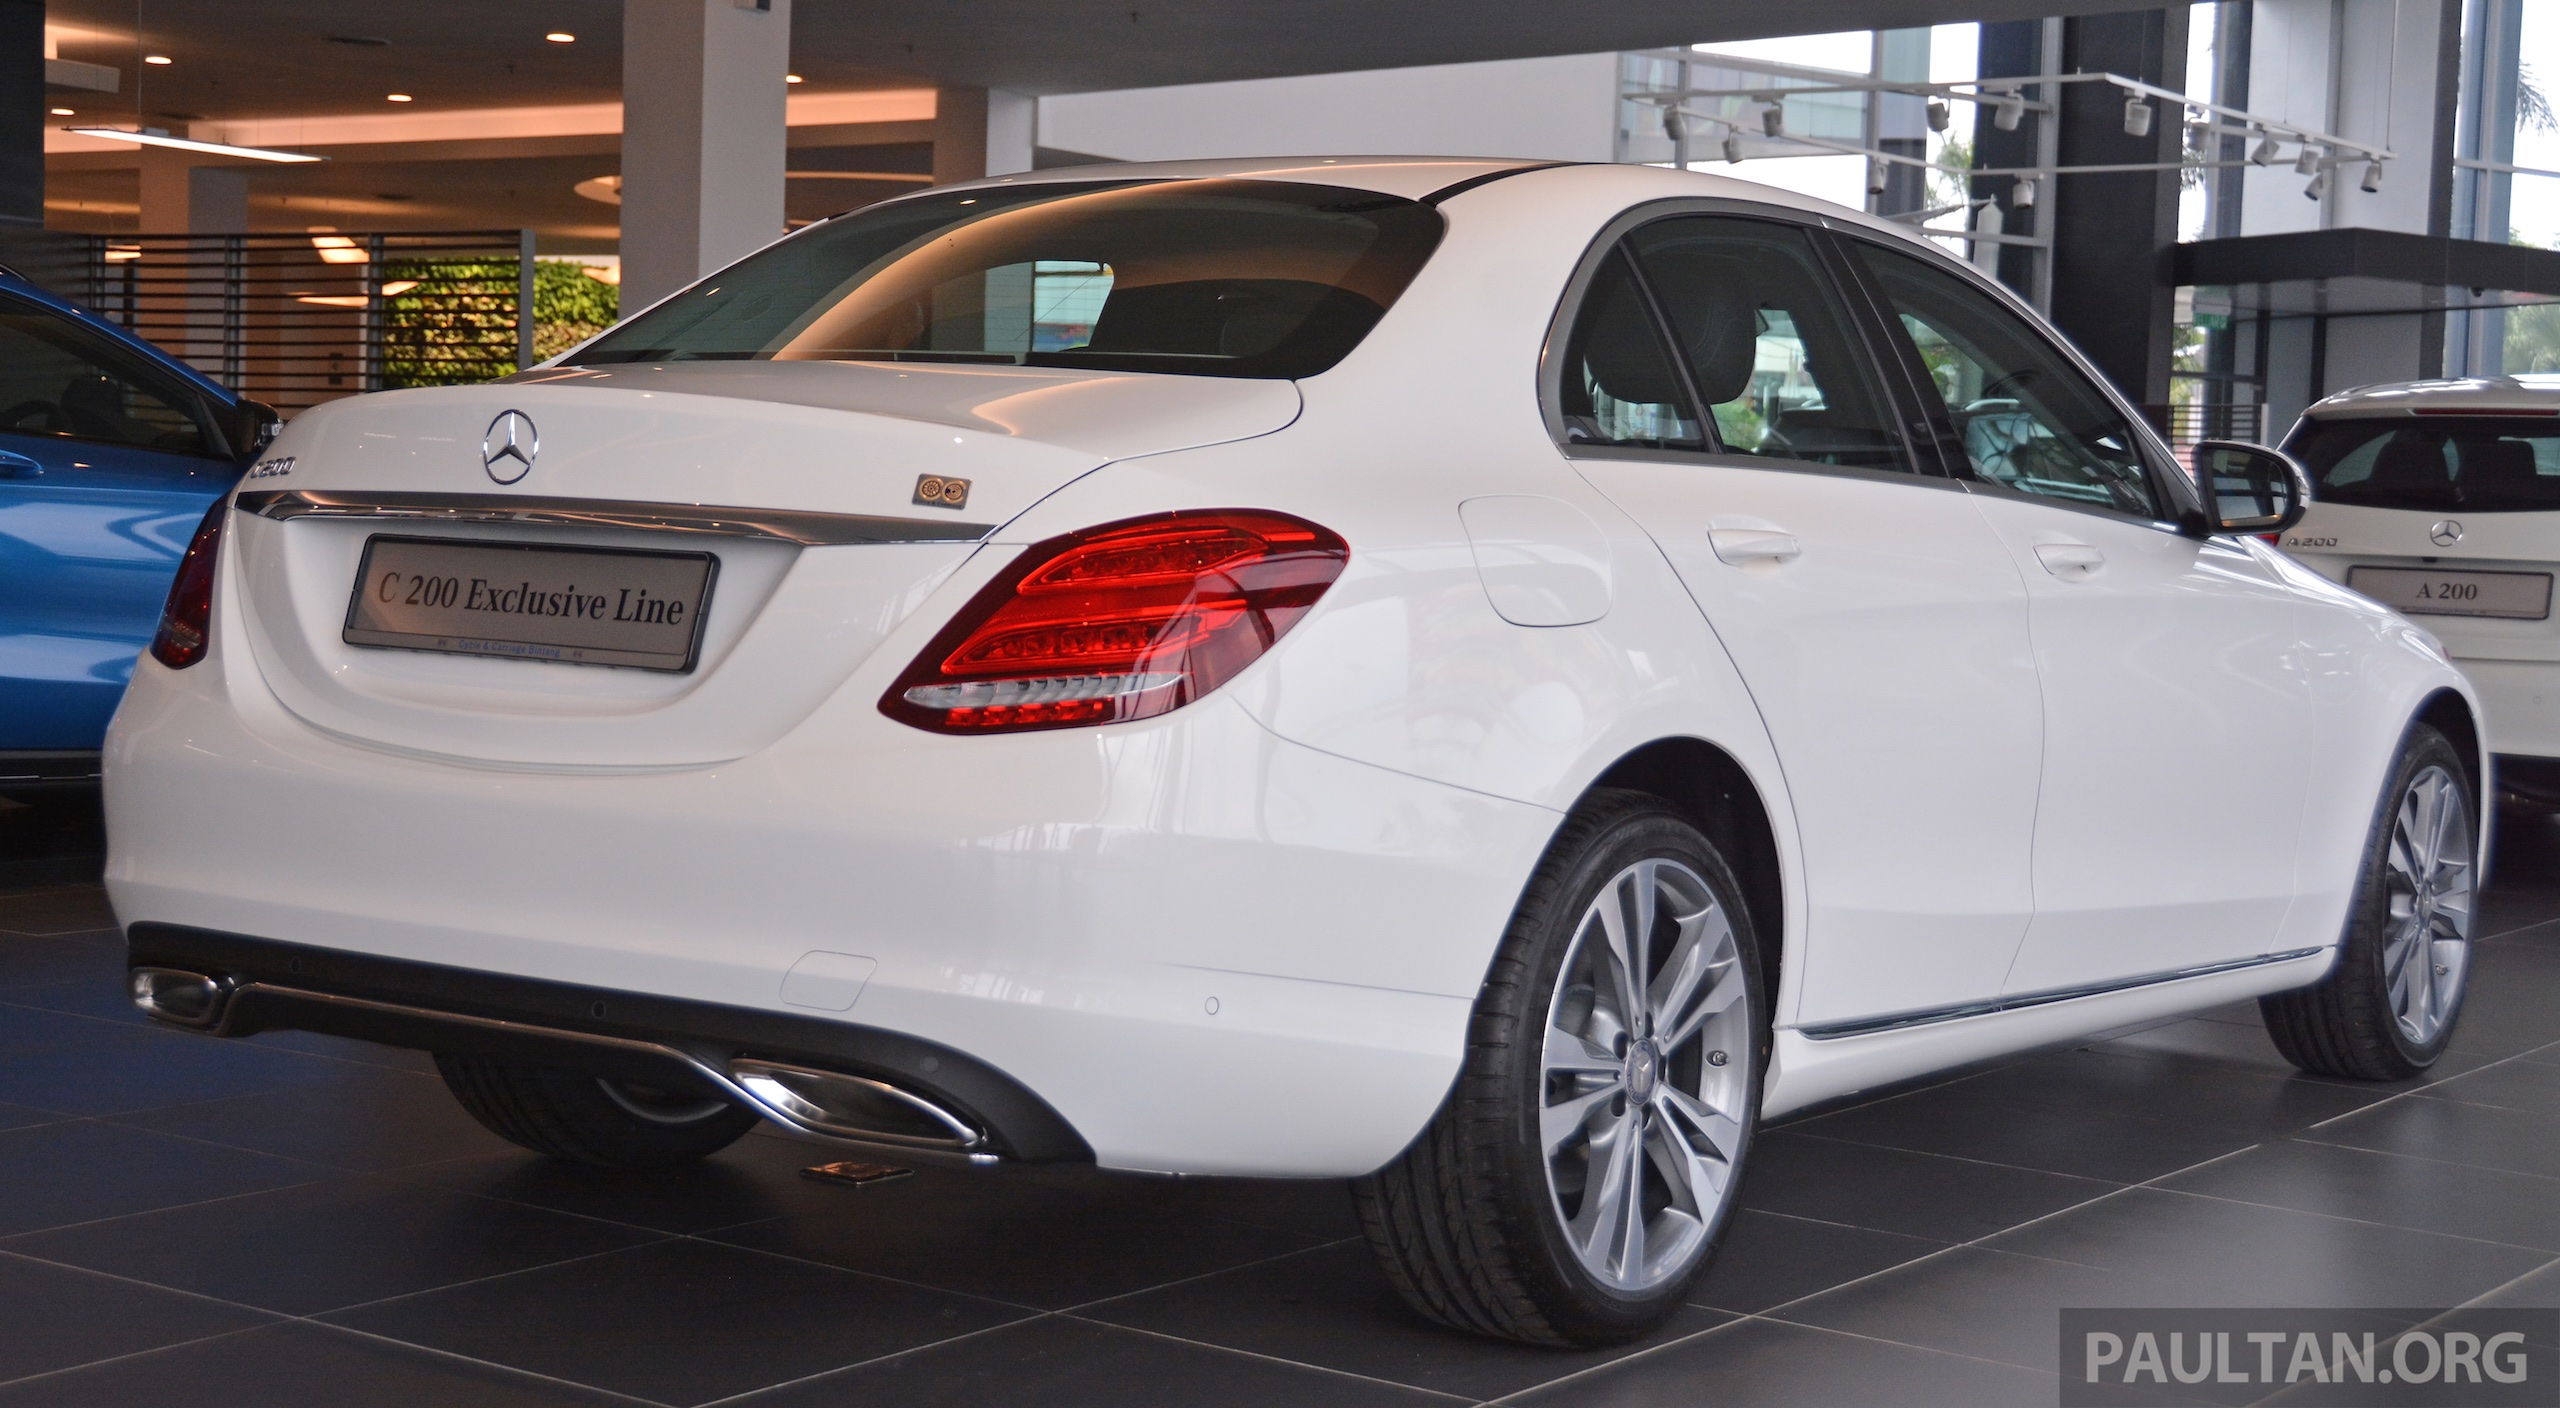 W205 mercedes benz c200 exclusive in m sia rm253k image for Mercedes benz malaysia